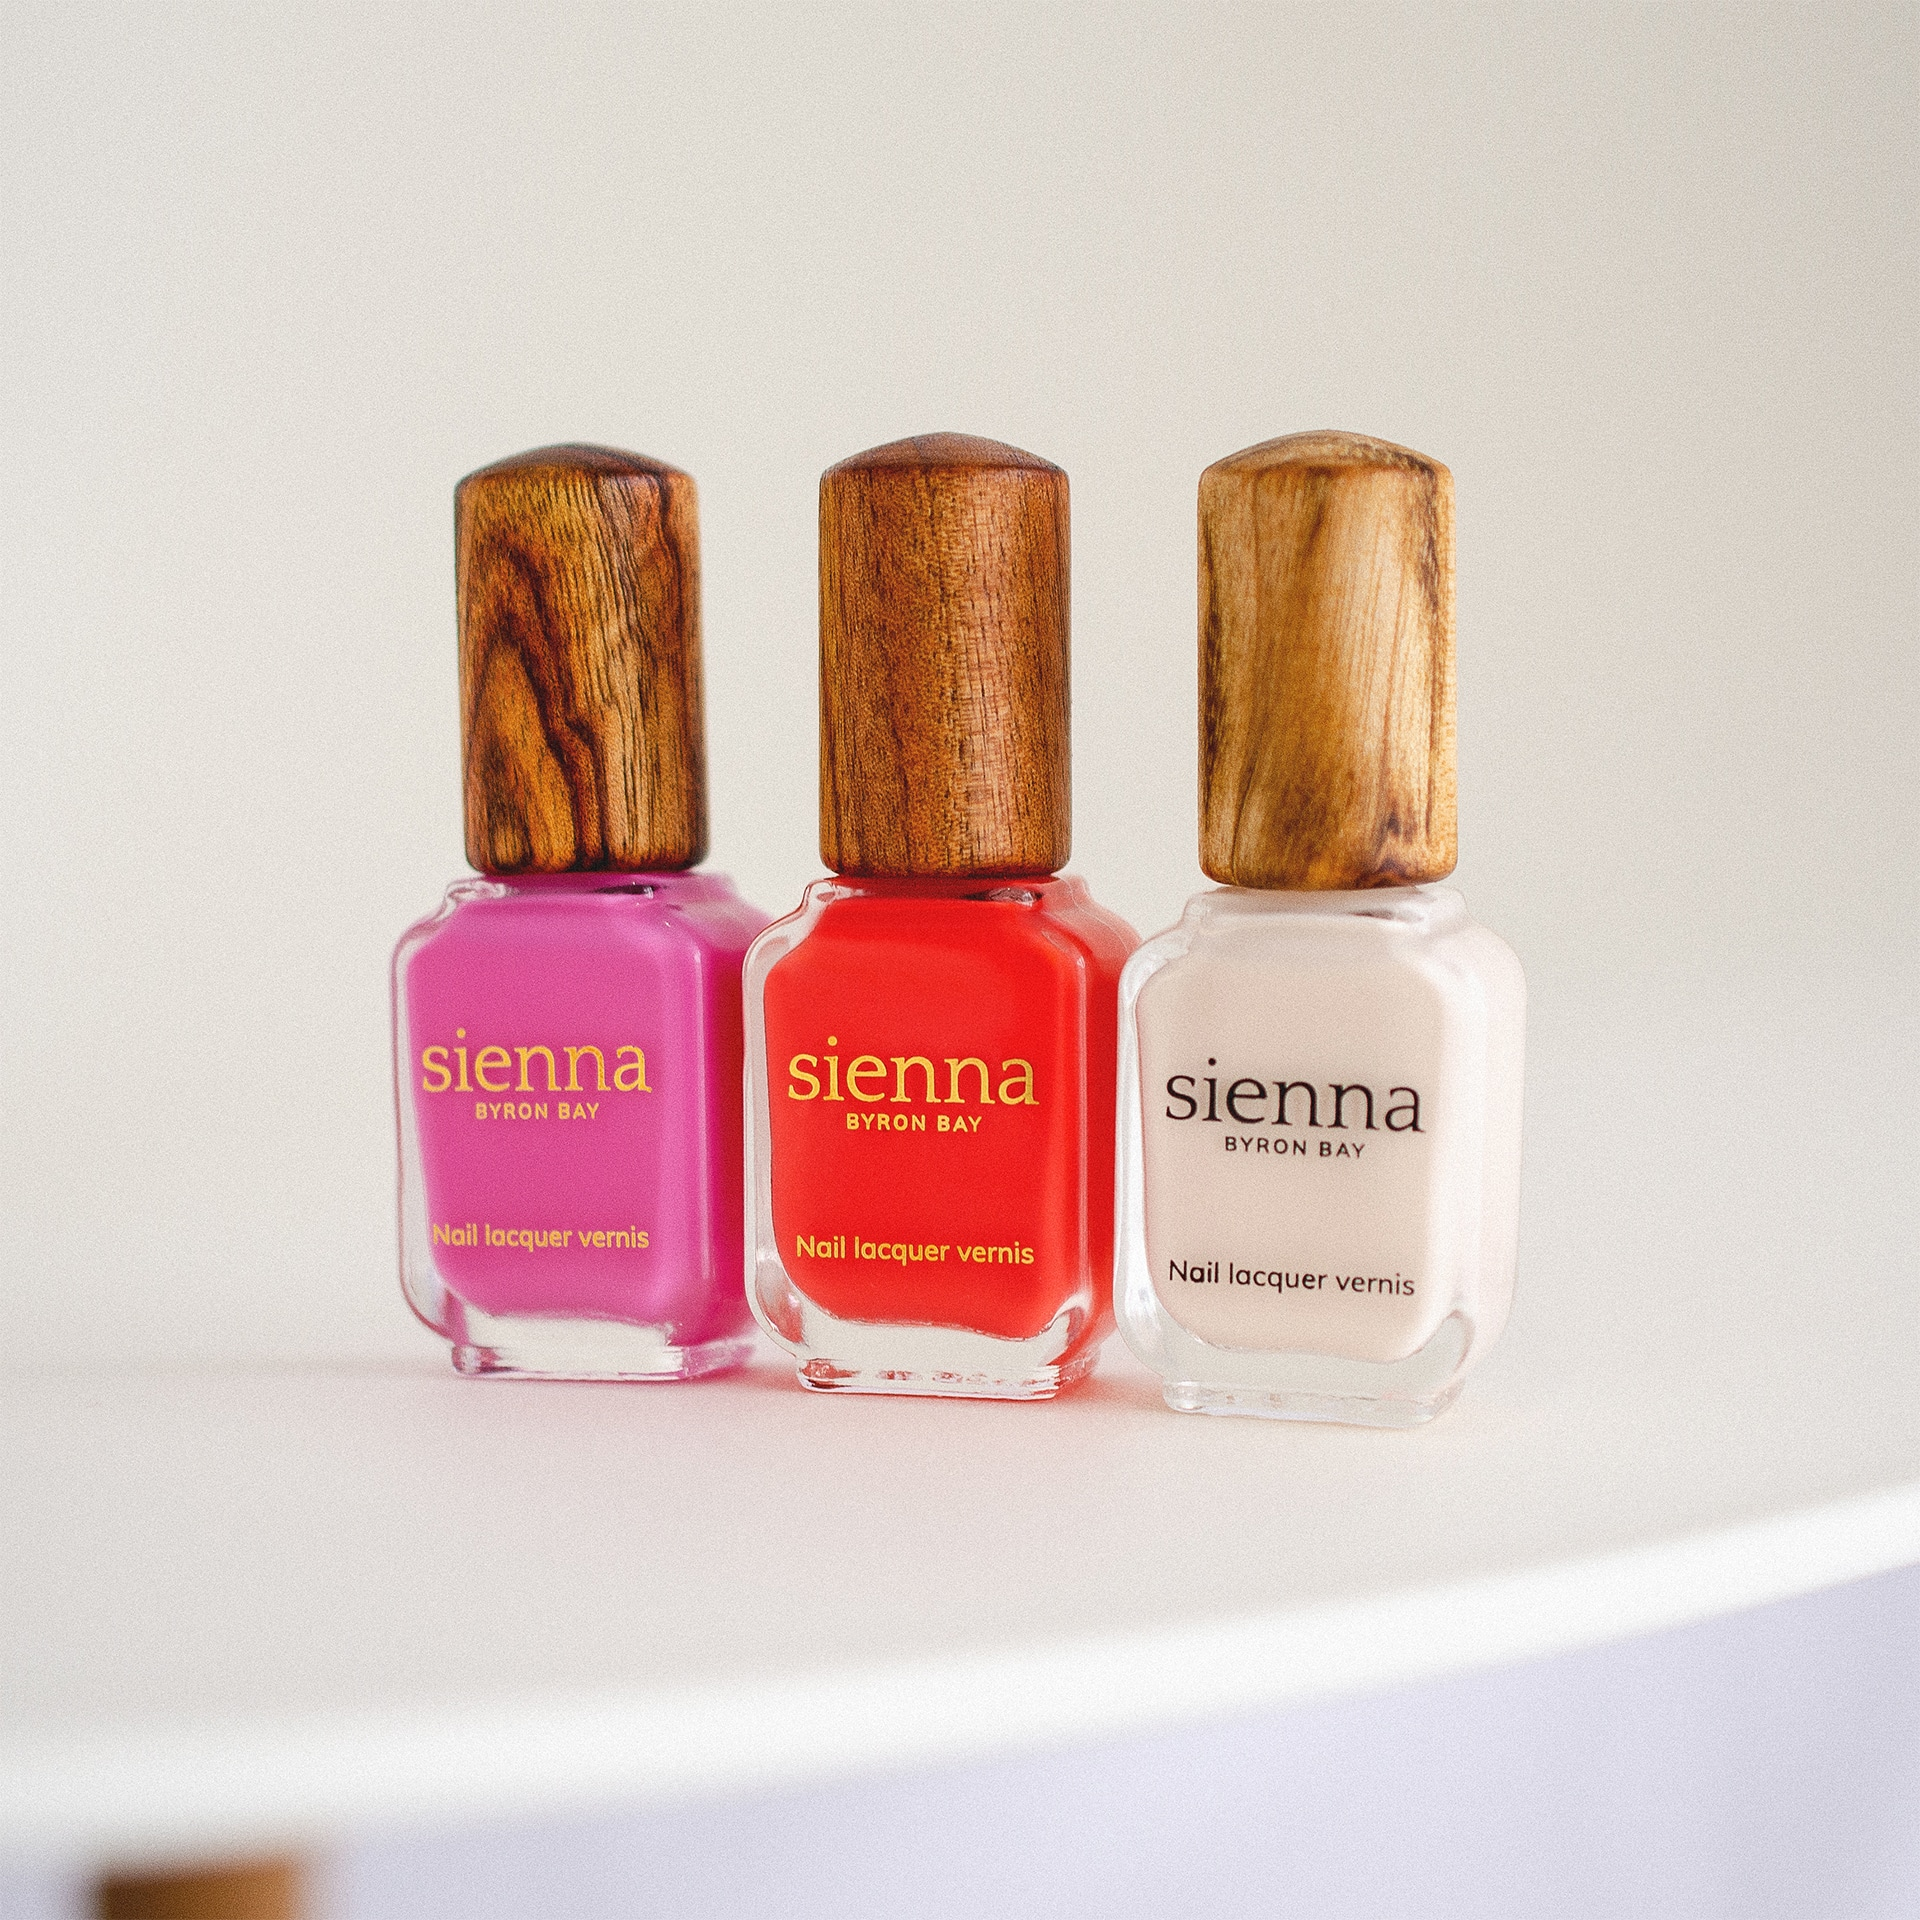 pink red and white nail polish next to each other on a white background by sienna